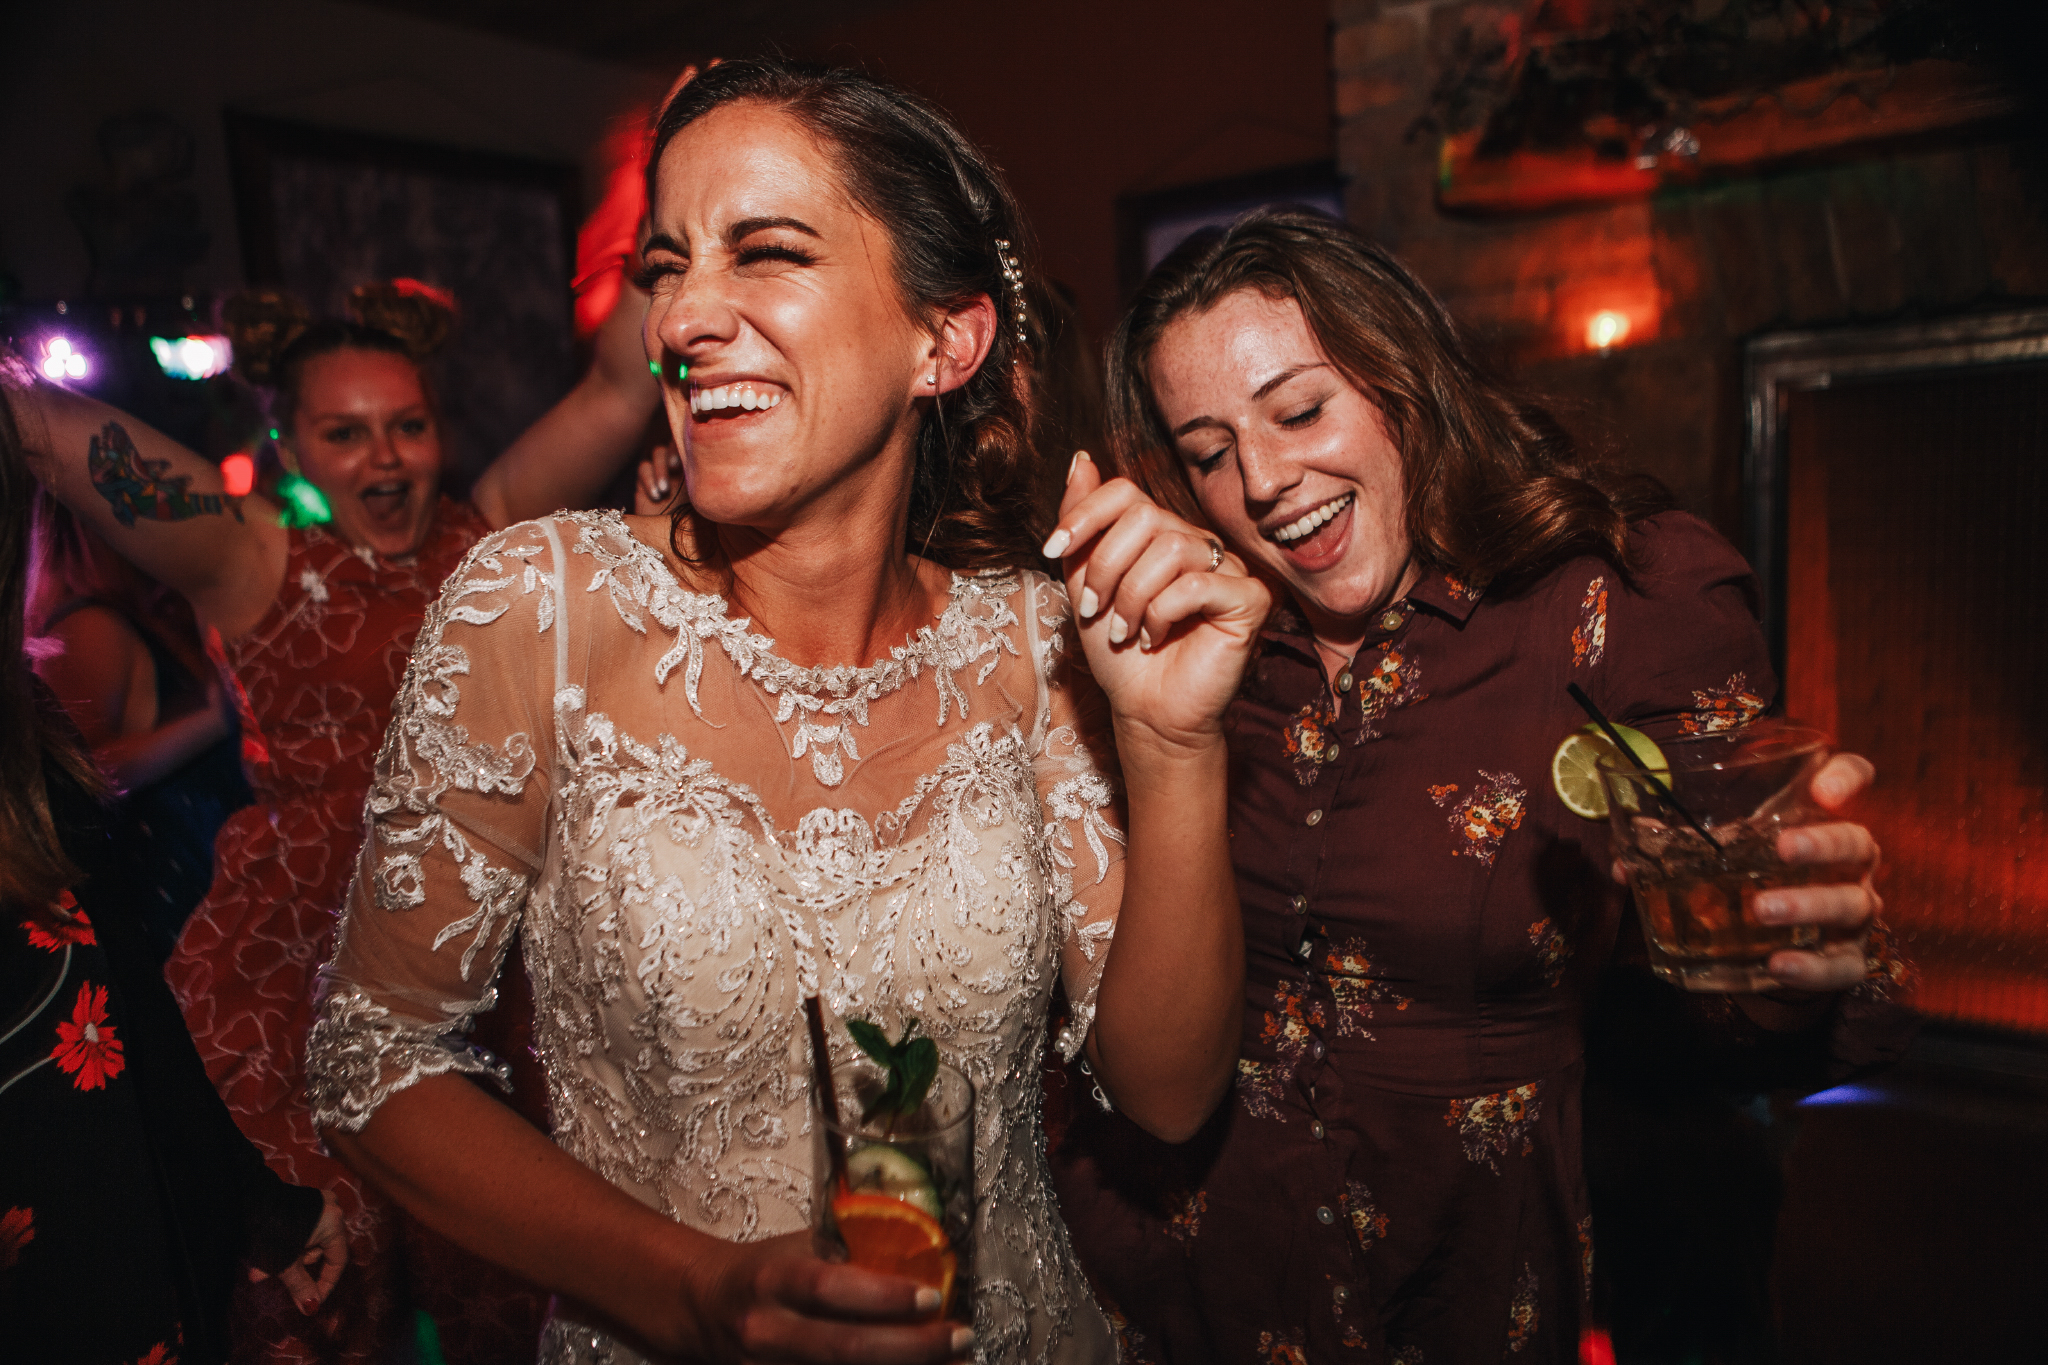 san diego wedding   photographer | bride dancing with a woman in a burgundy dress holding a drink